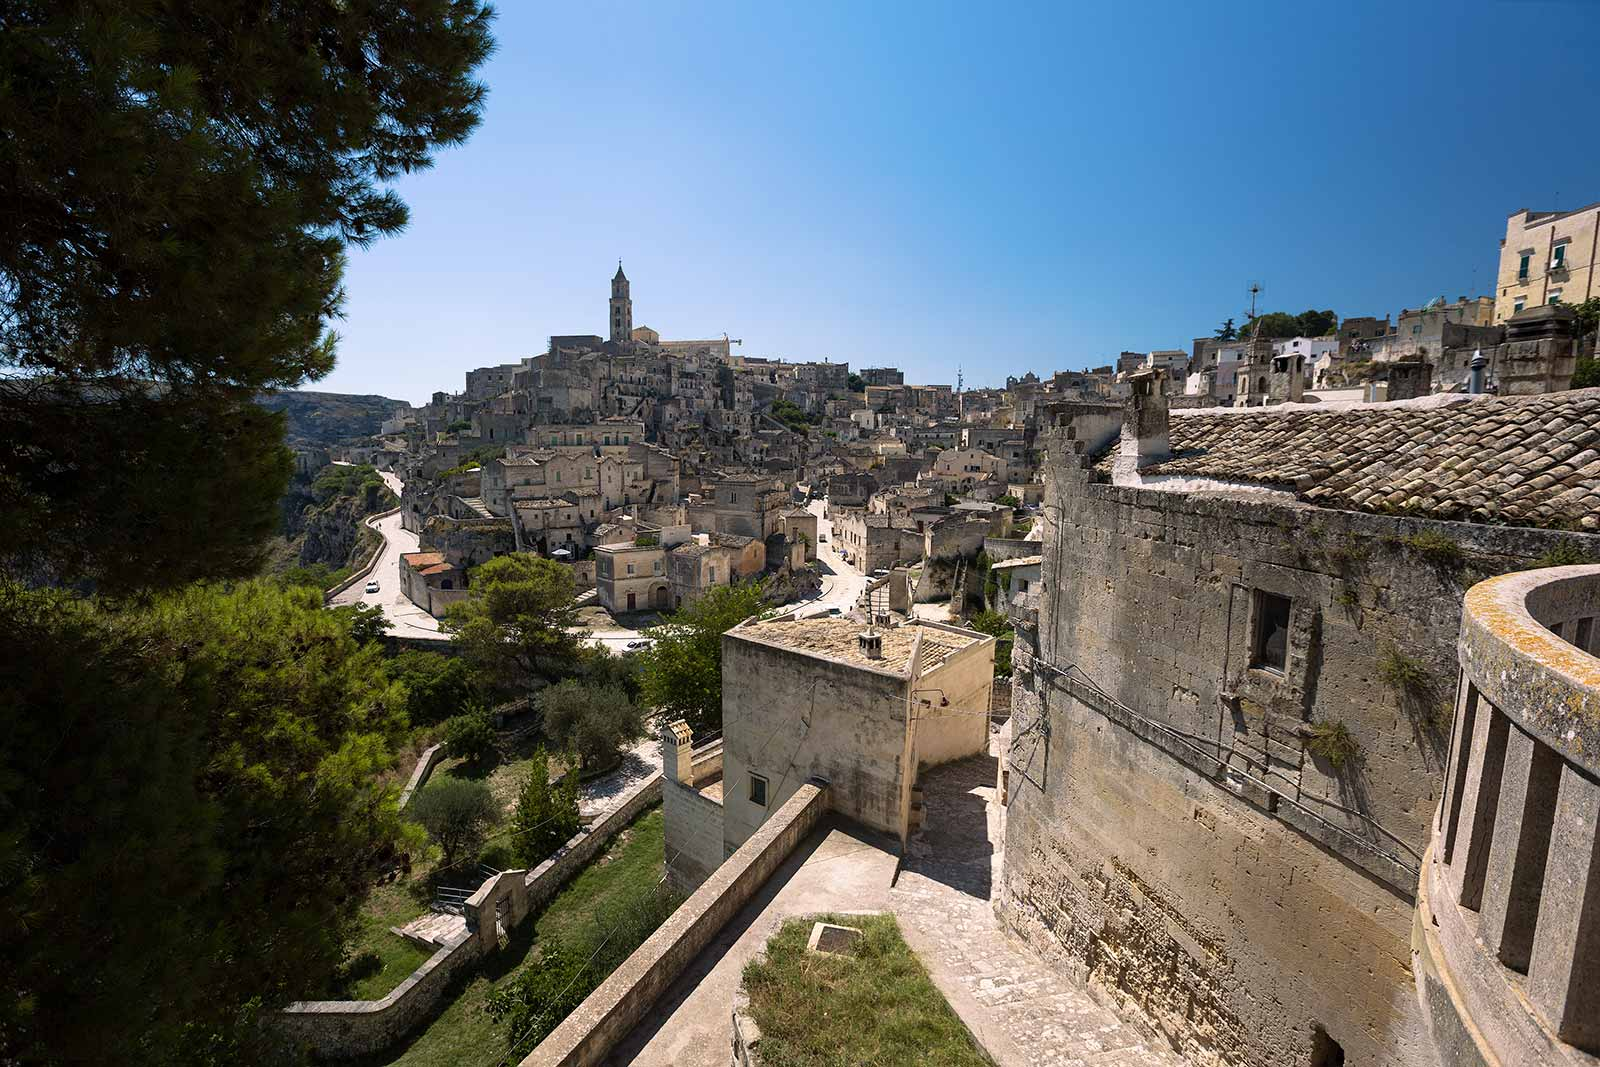 This is the view of Sassi di Matera from Church of San Agostino. It'S the most iconic image of the city.